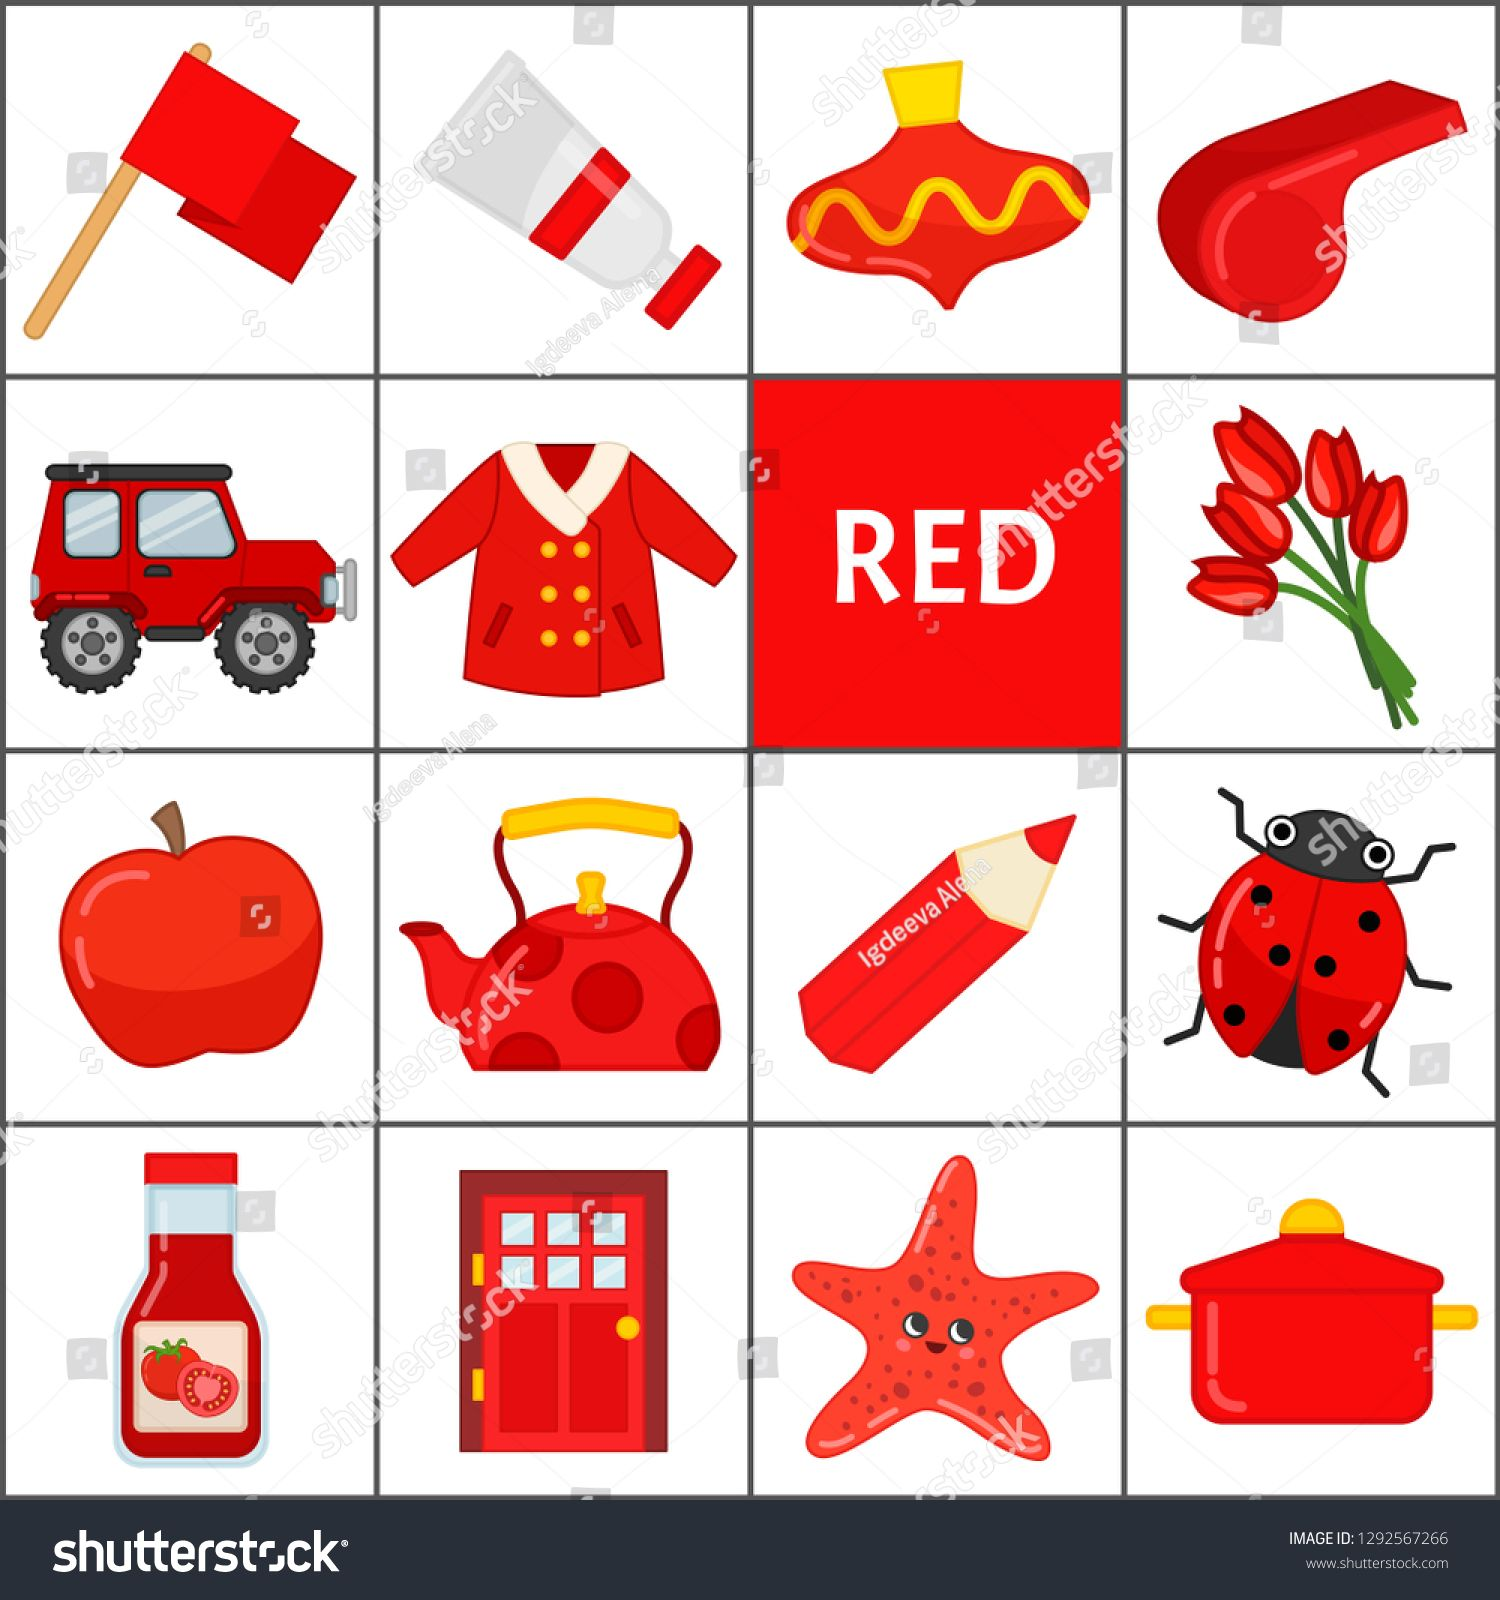 Learn The Primary Colors Red Different Objects In Red